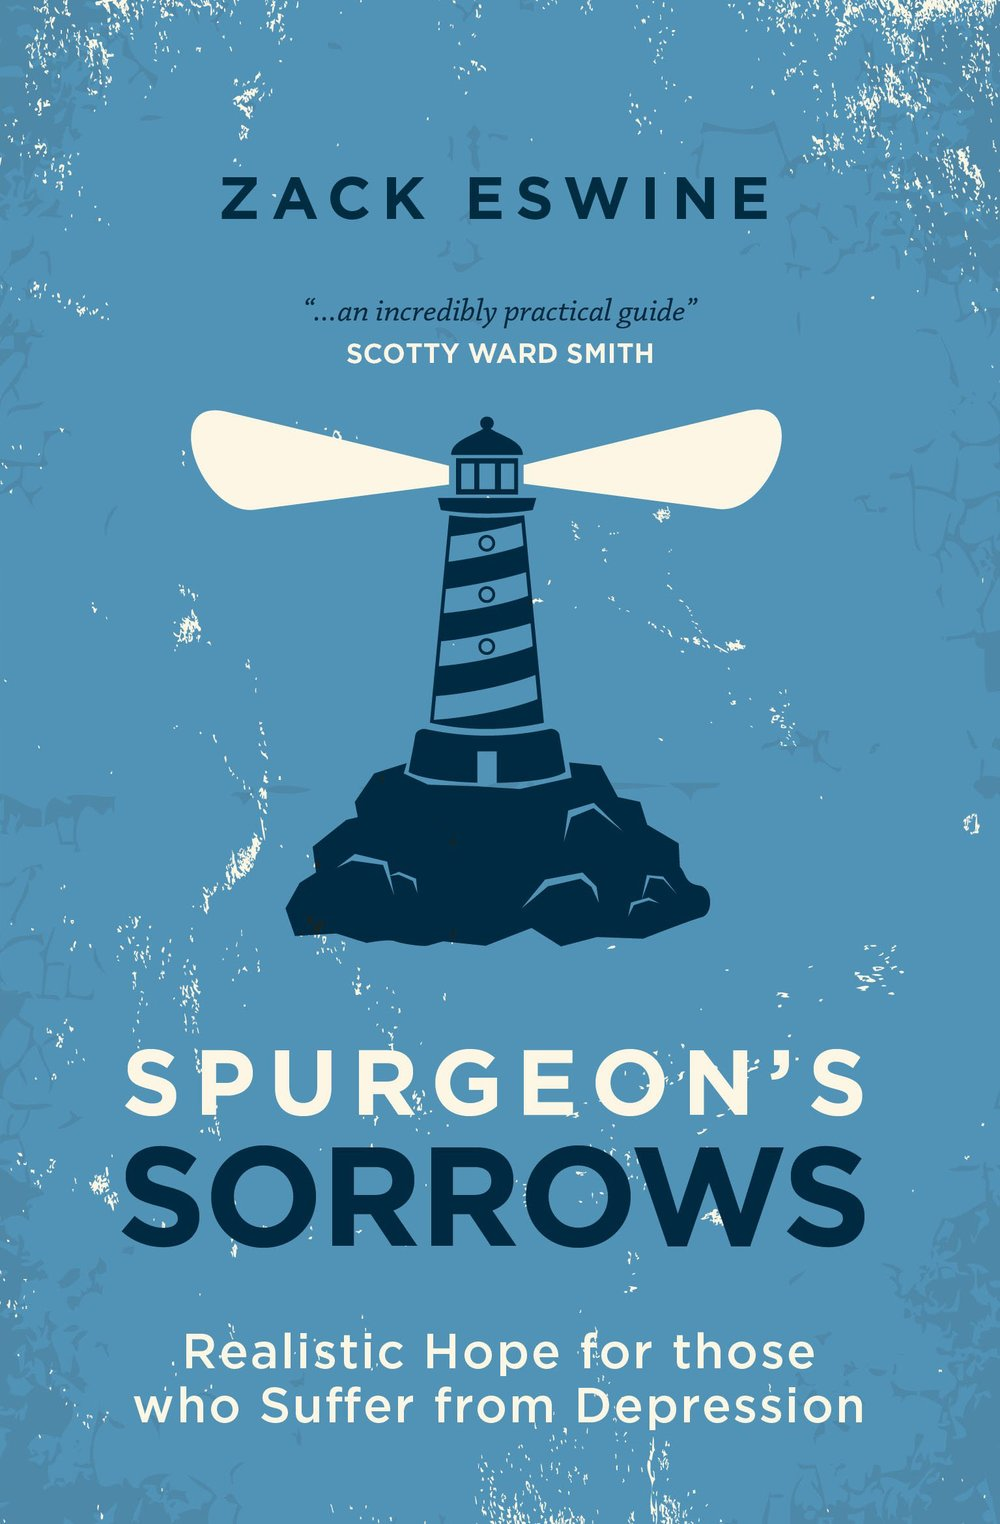 Spurgeon's Sorrows.jpg